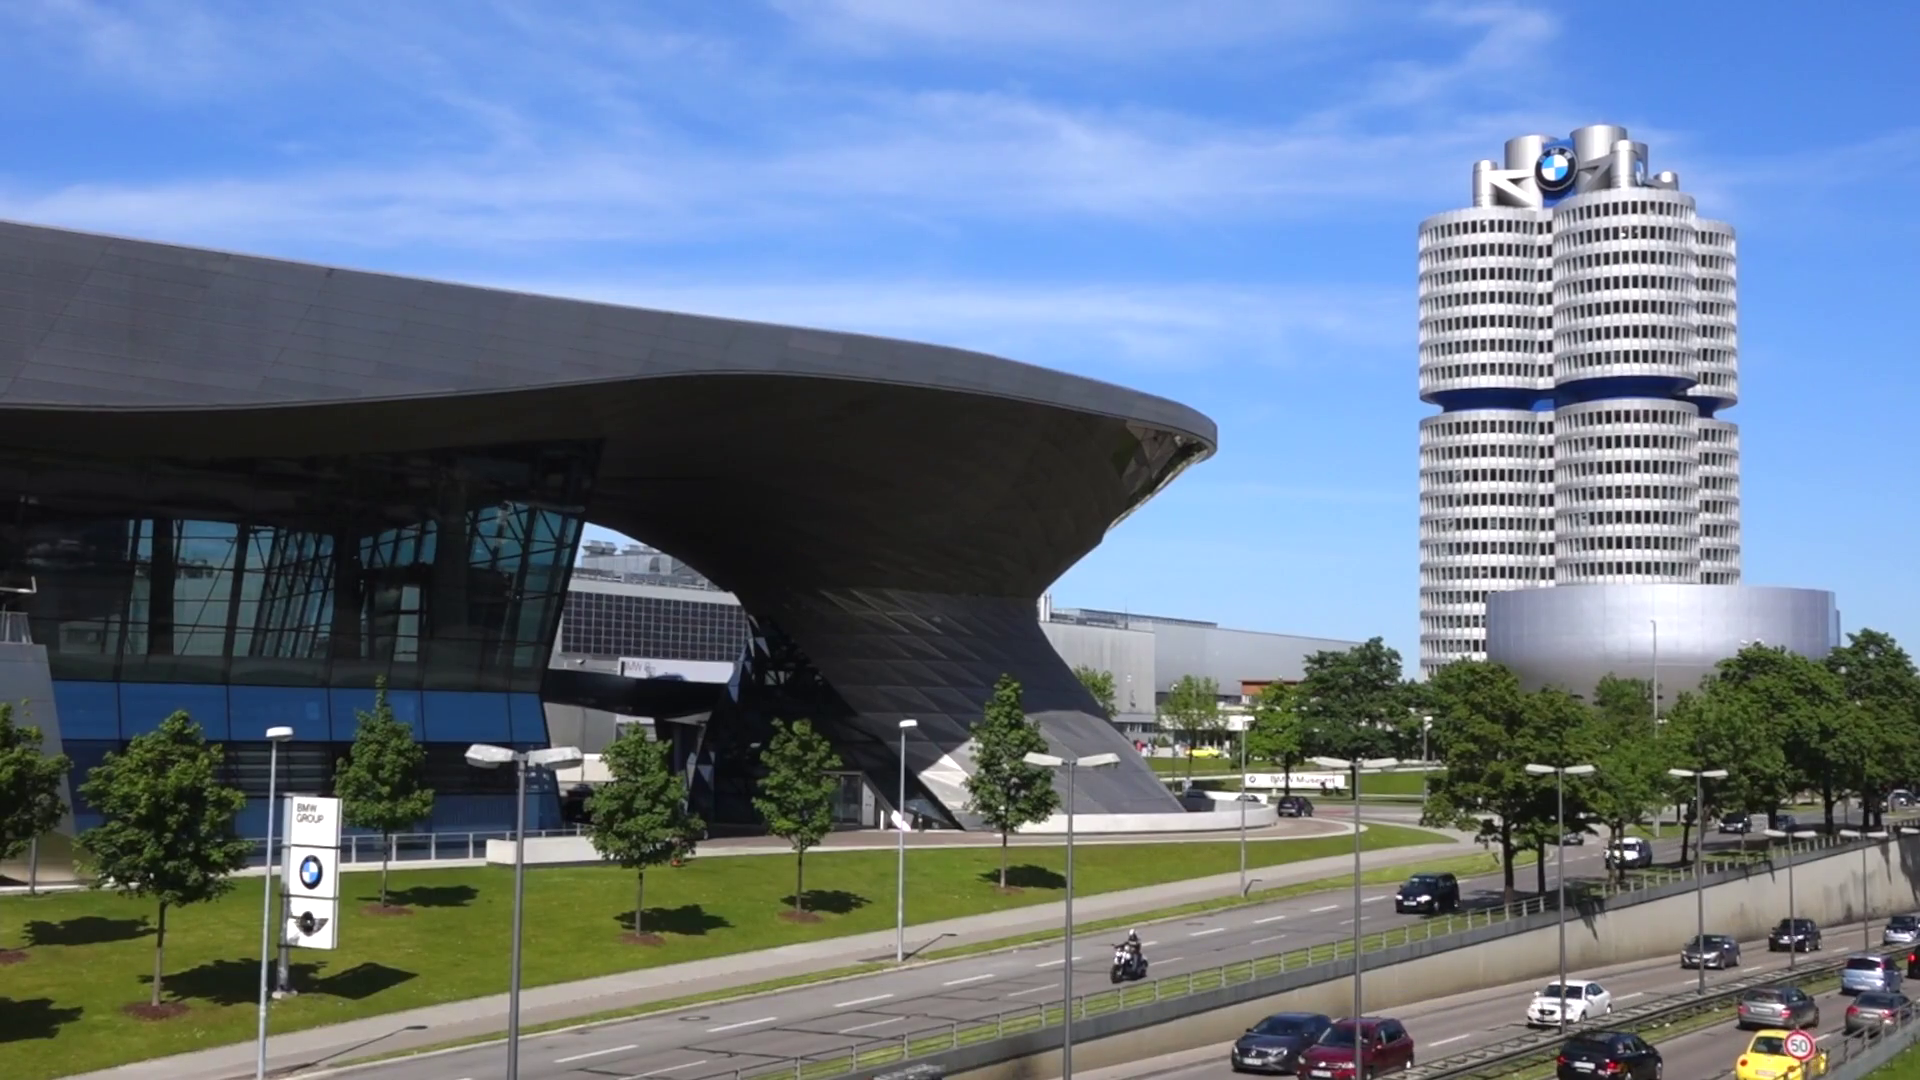 Name:  videoblocks-bmw-welt-bmw-museum-and-bmw-headquarters-munich-bavaria-germany-europe_hjkbc0pfz_thu.png